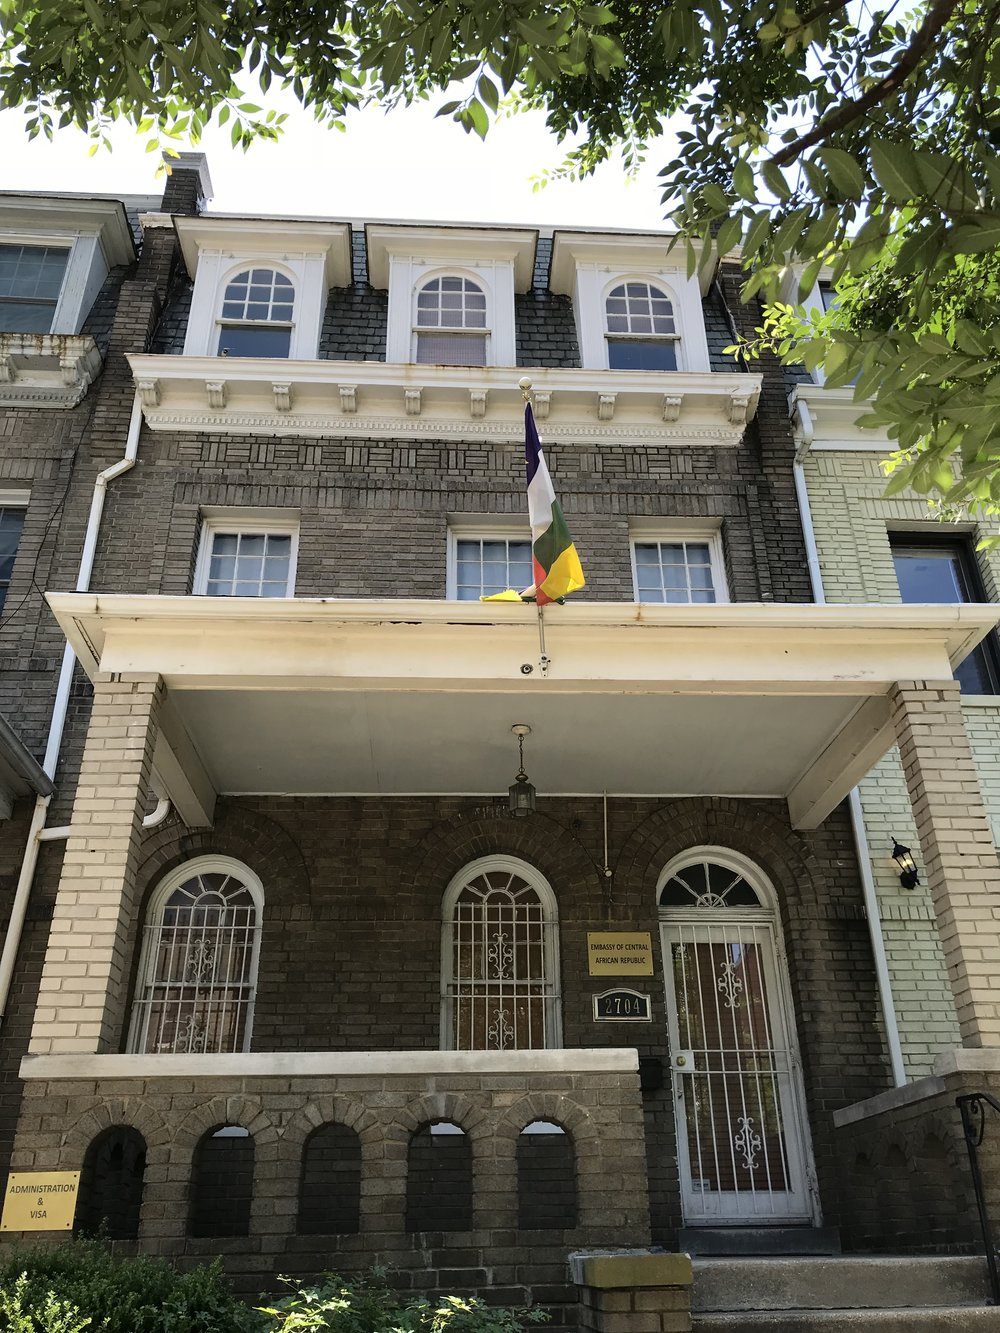 The Embassy of the Central African Republic.